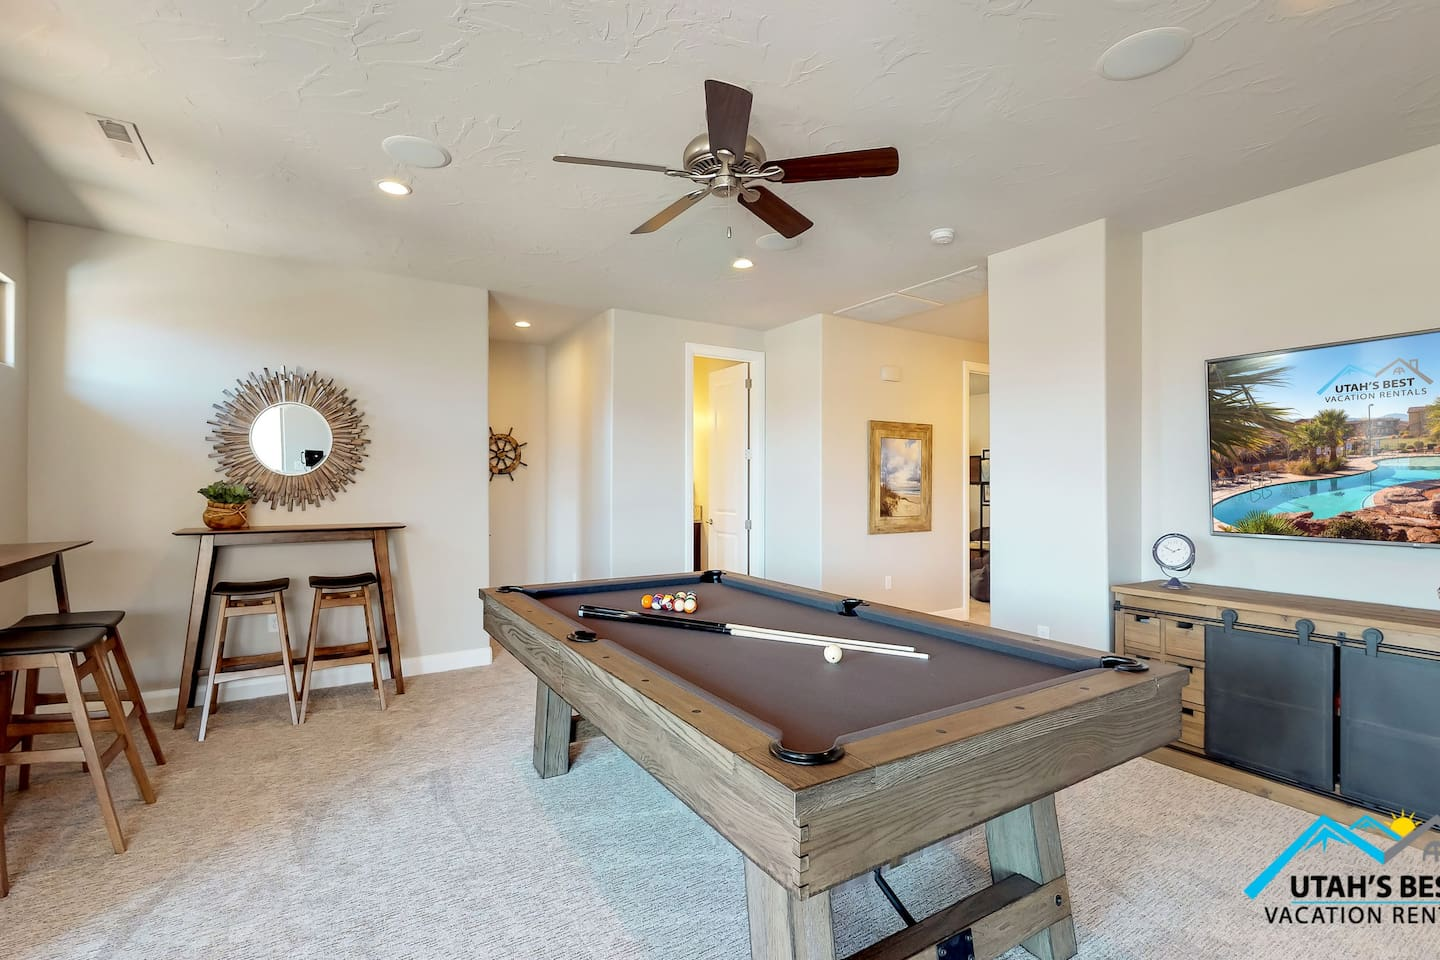 Pool table in the upstairs game room